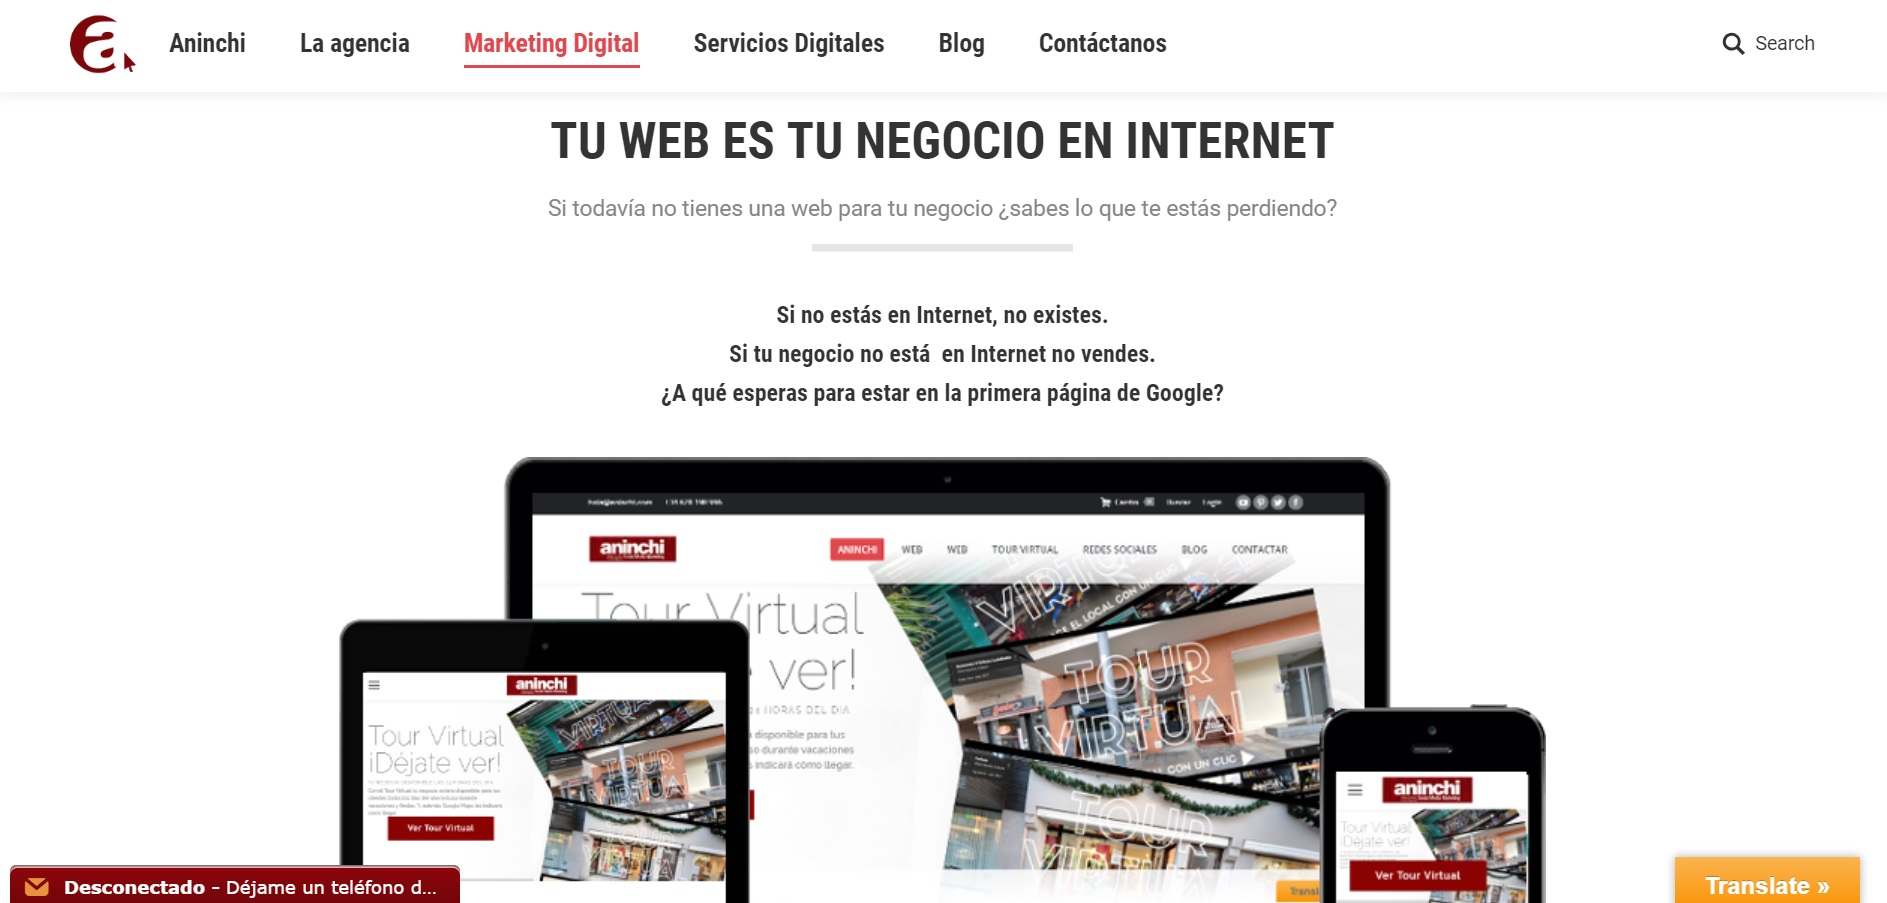 a screenshot of the aninchi.com page from spain to showcase our website portfolio